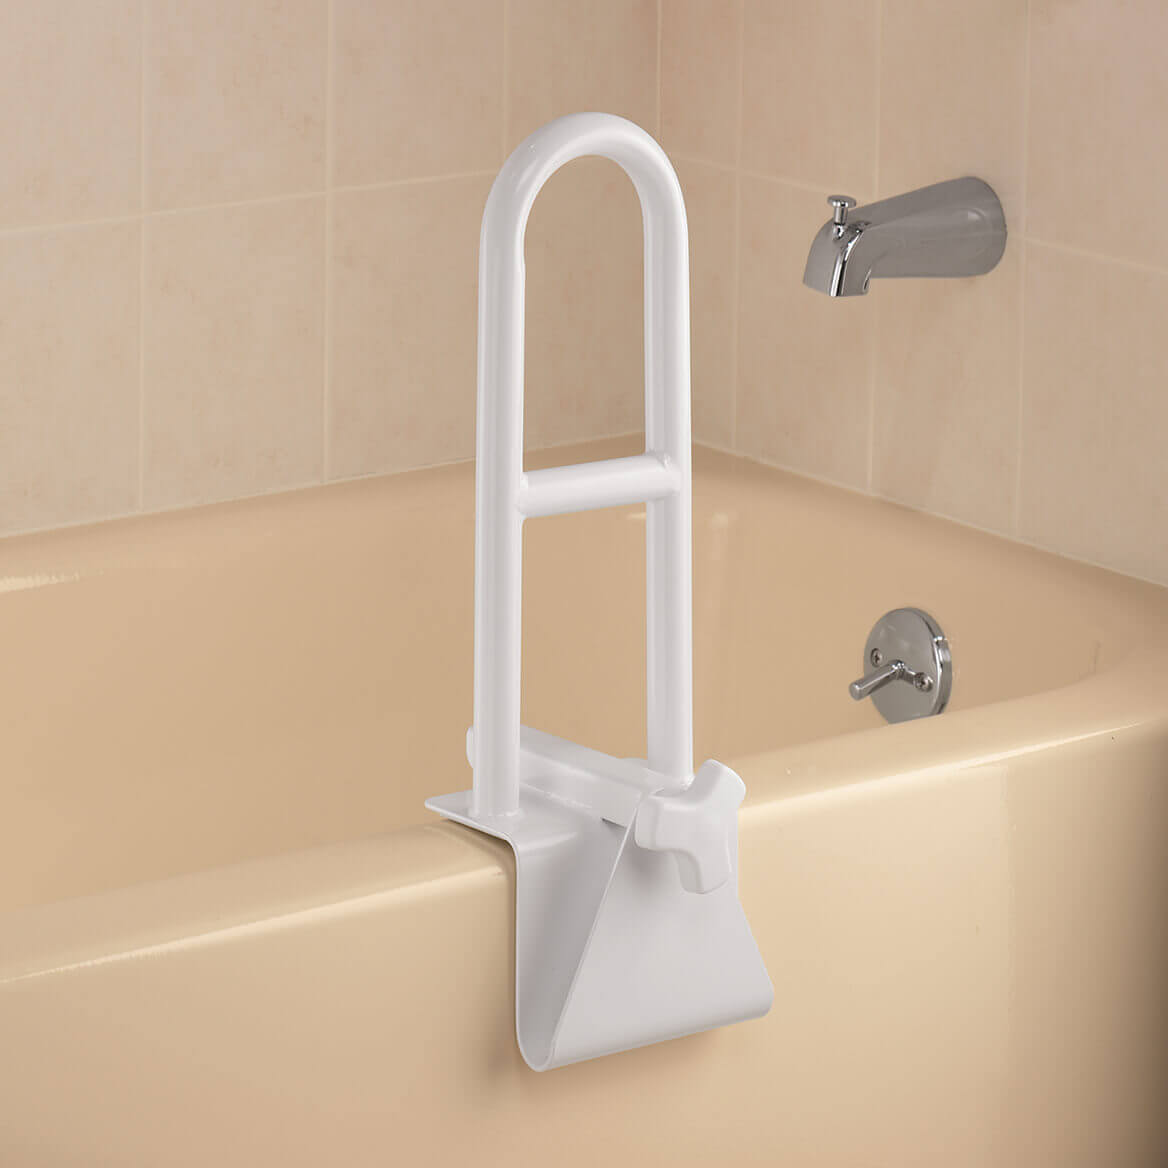 Easy Grip Adjustable Tub Bar-329864